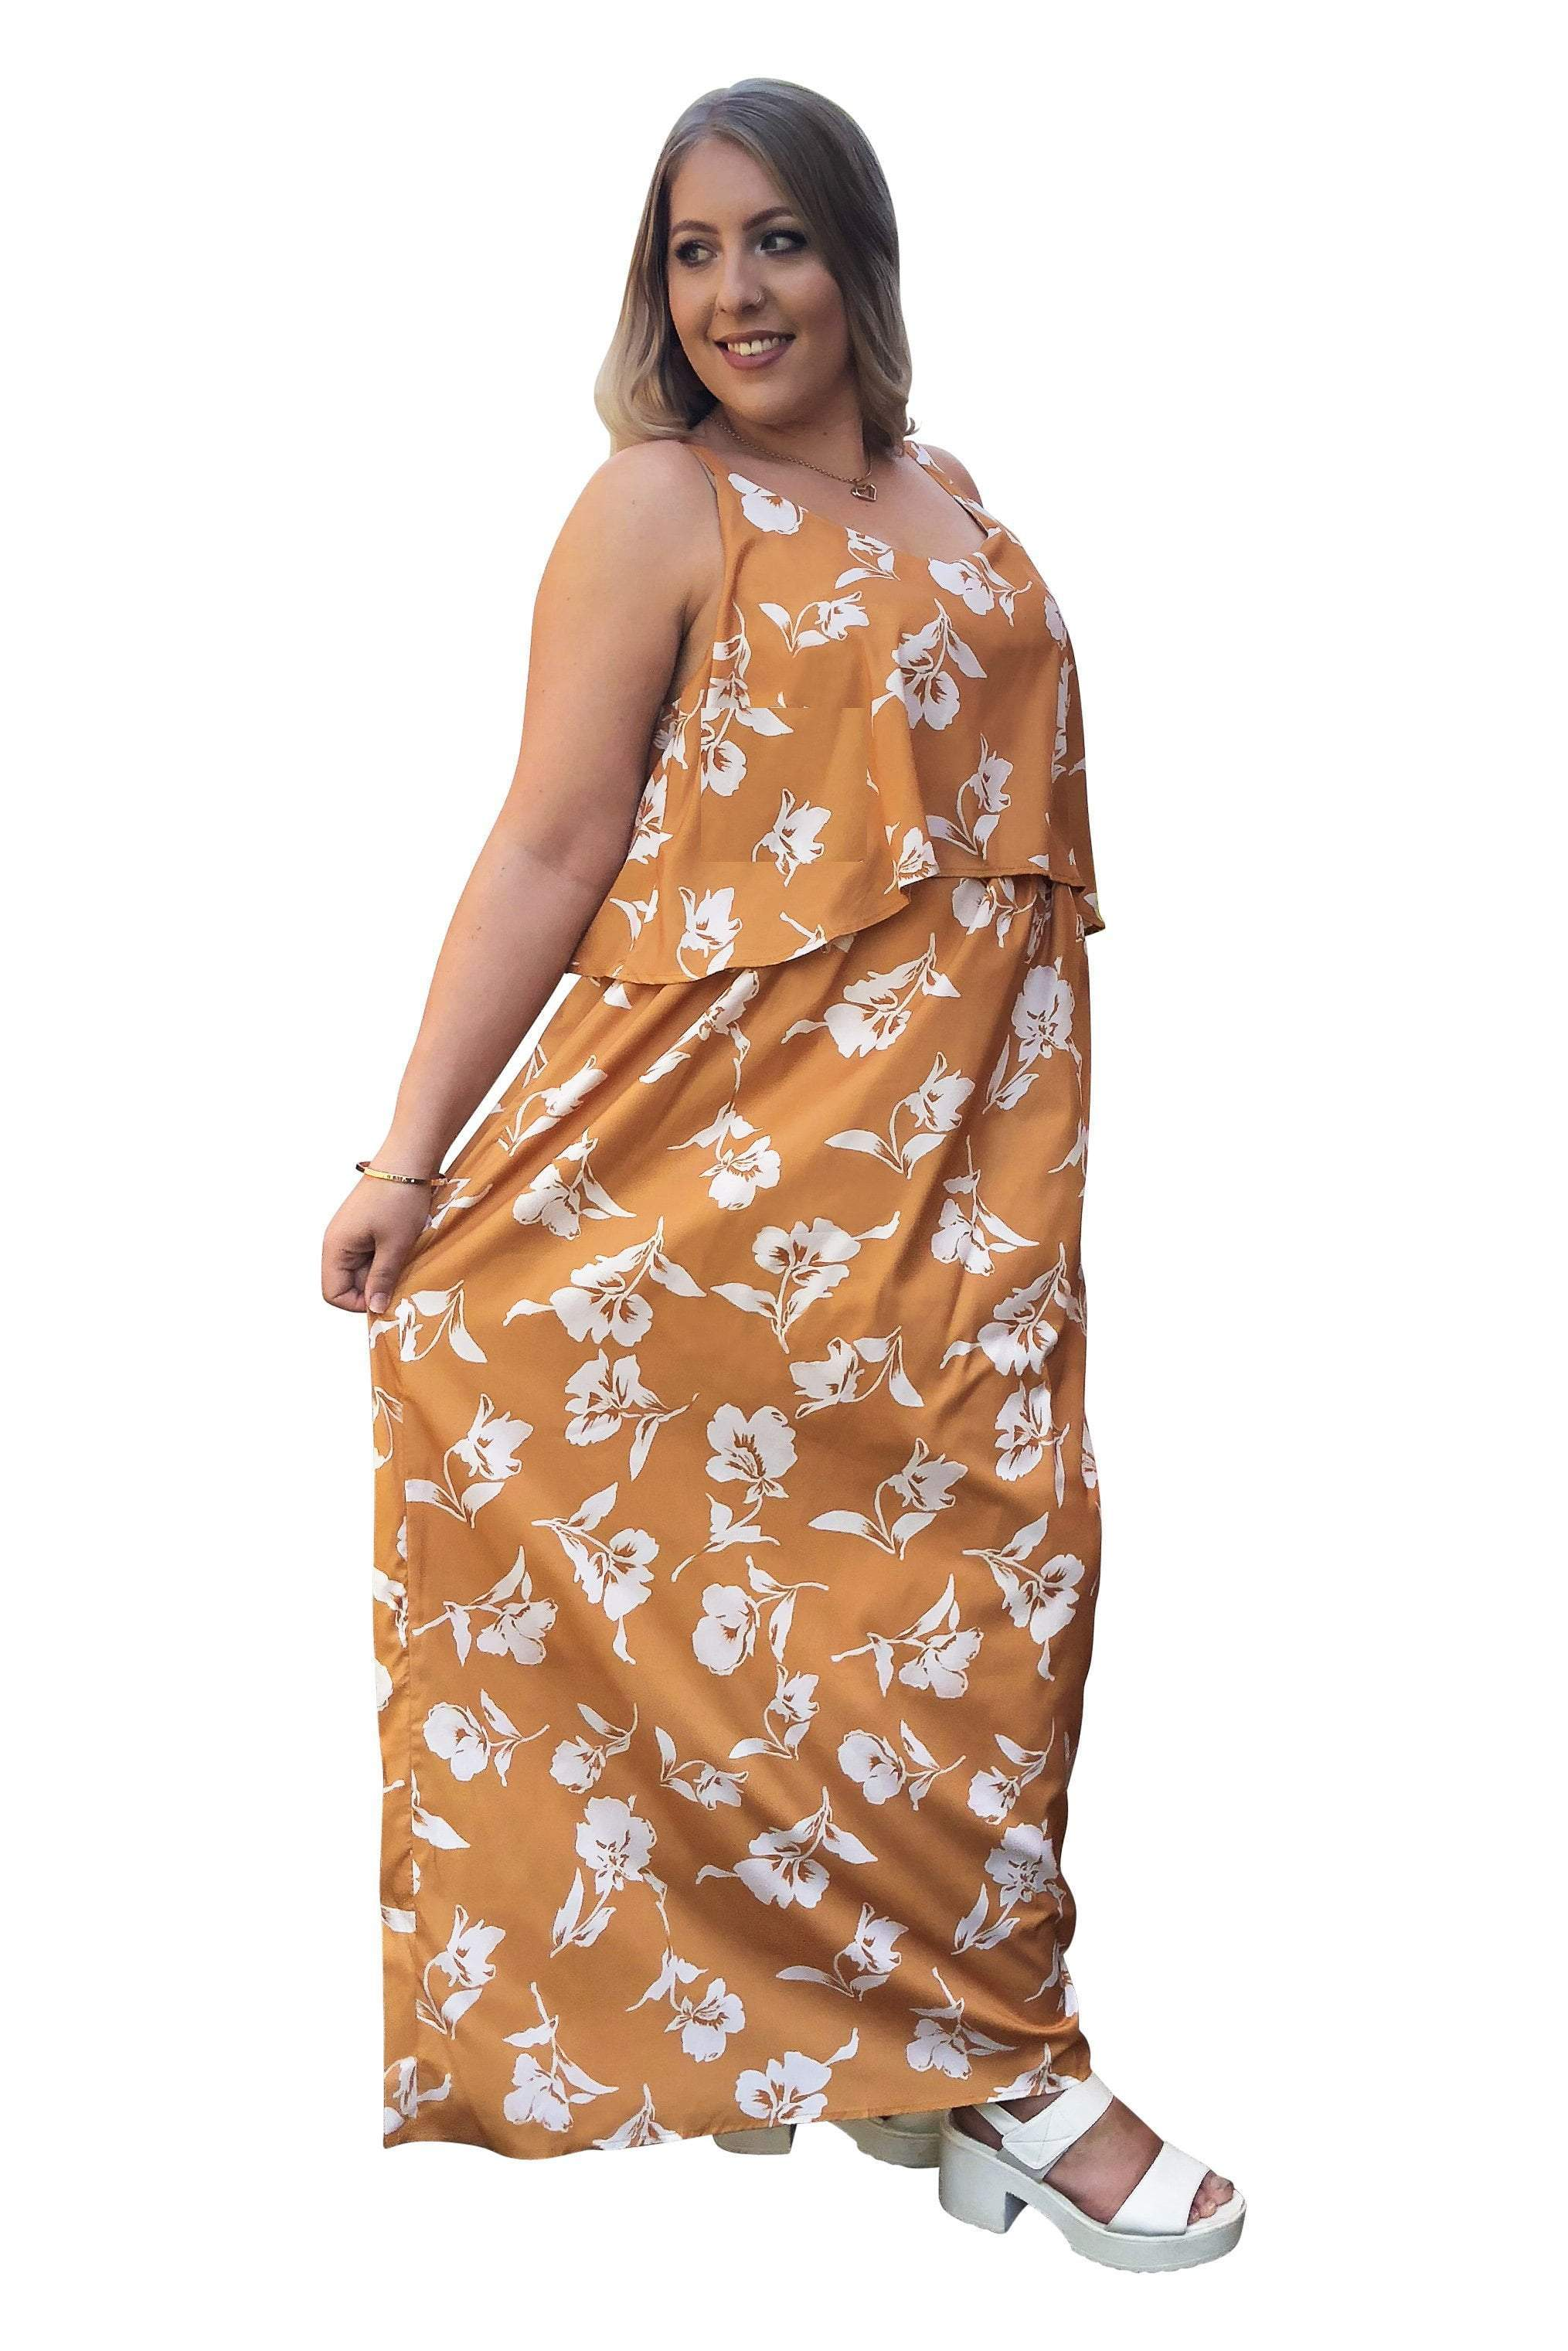 plus size Maxi Dress L / AUS 16 / Mustard Yellow Willow Maxi Dress - CLEARANCE